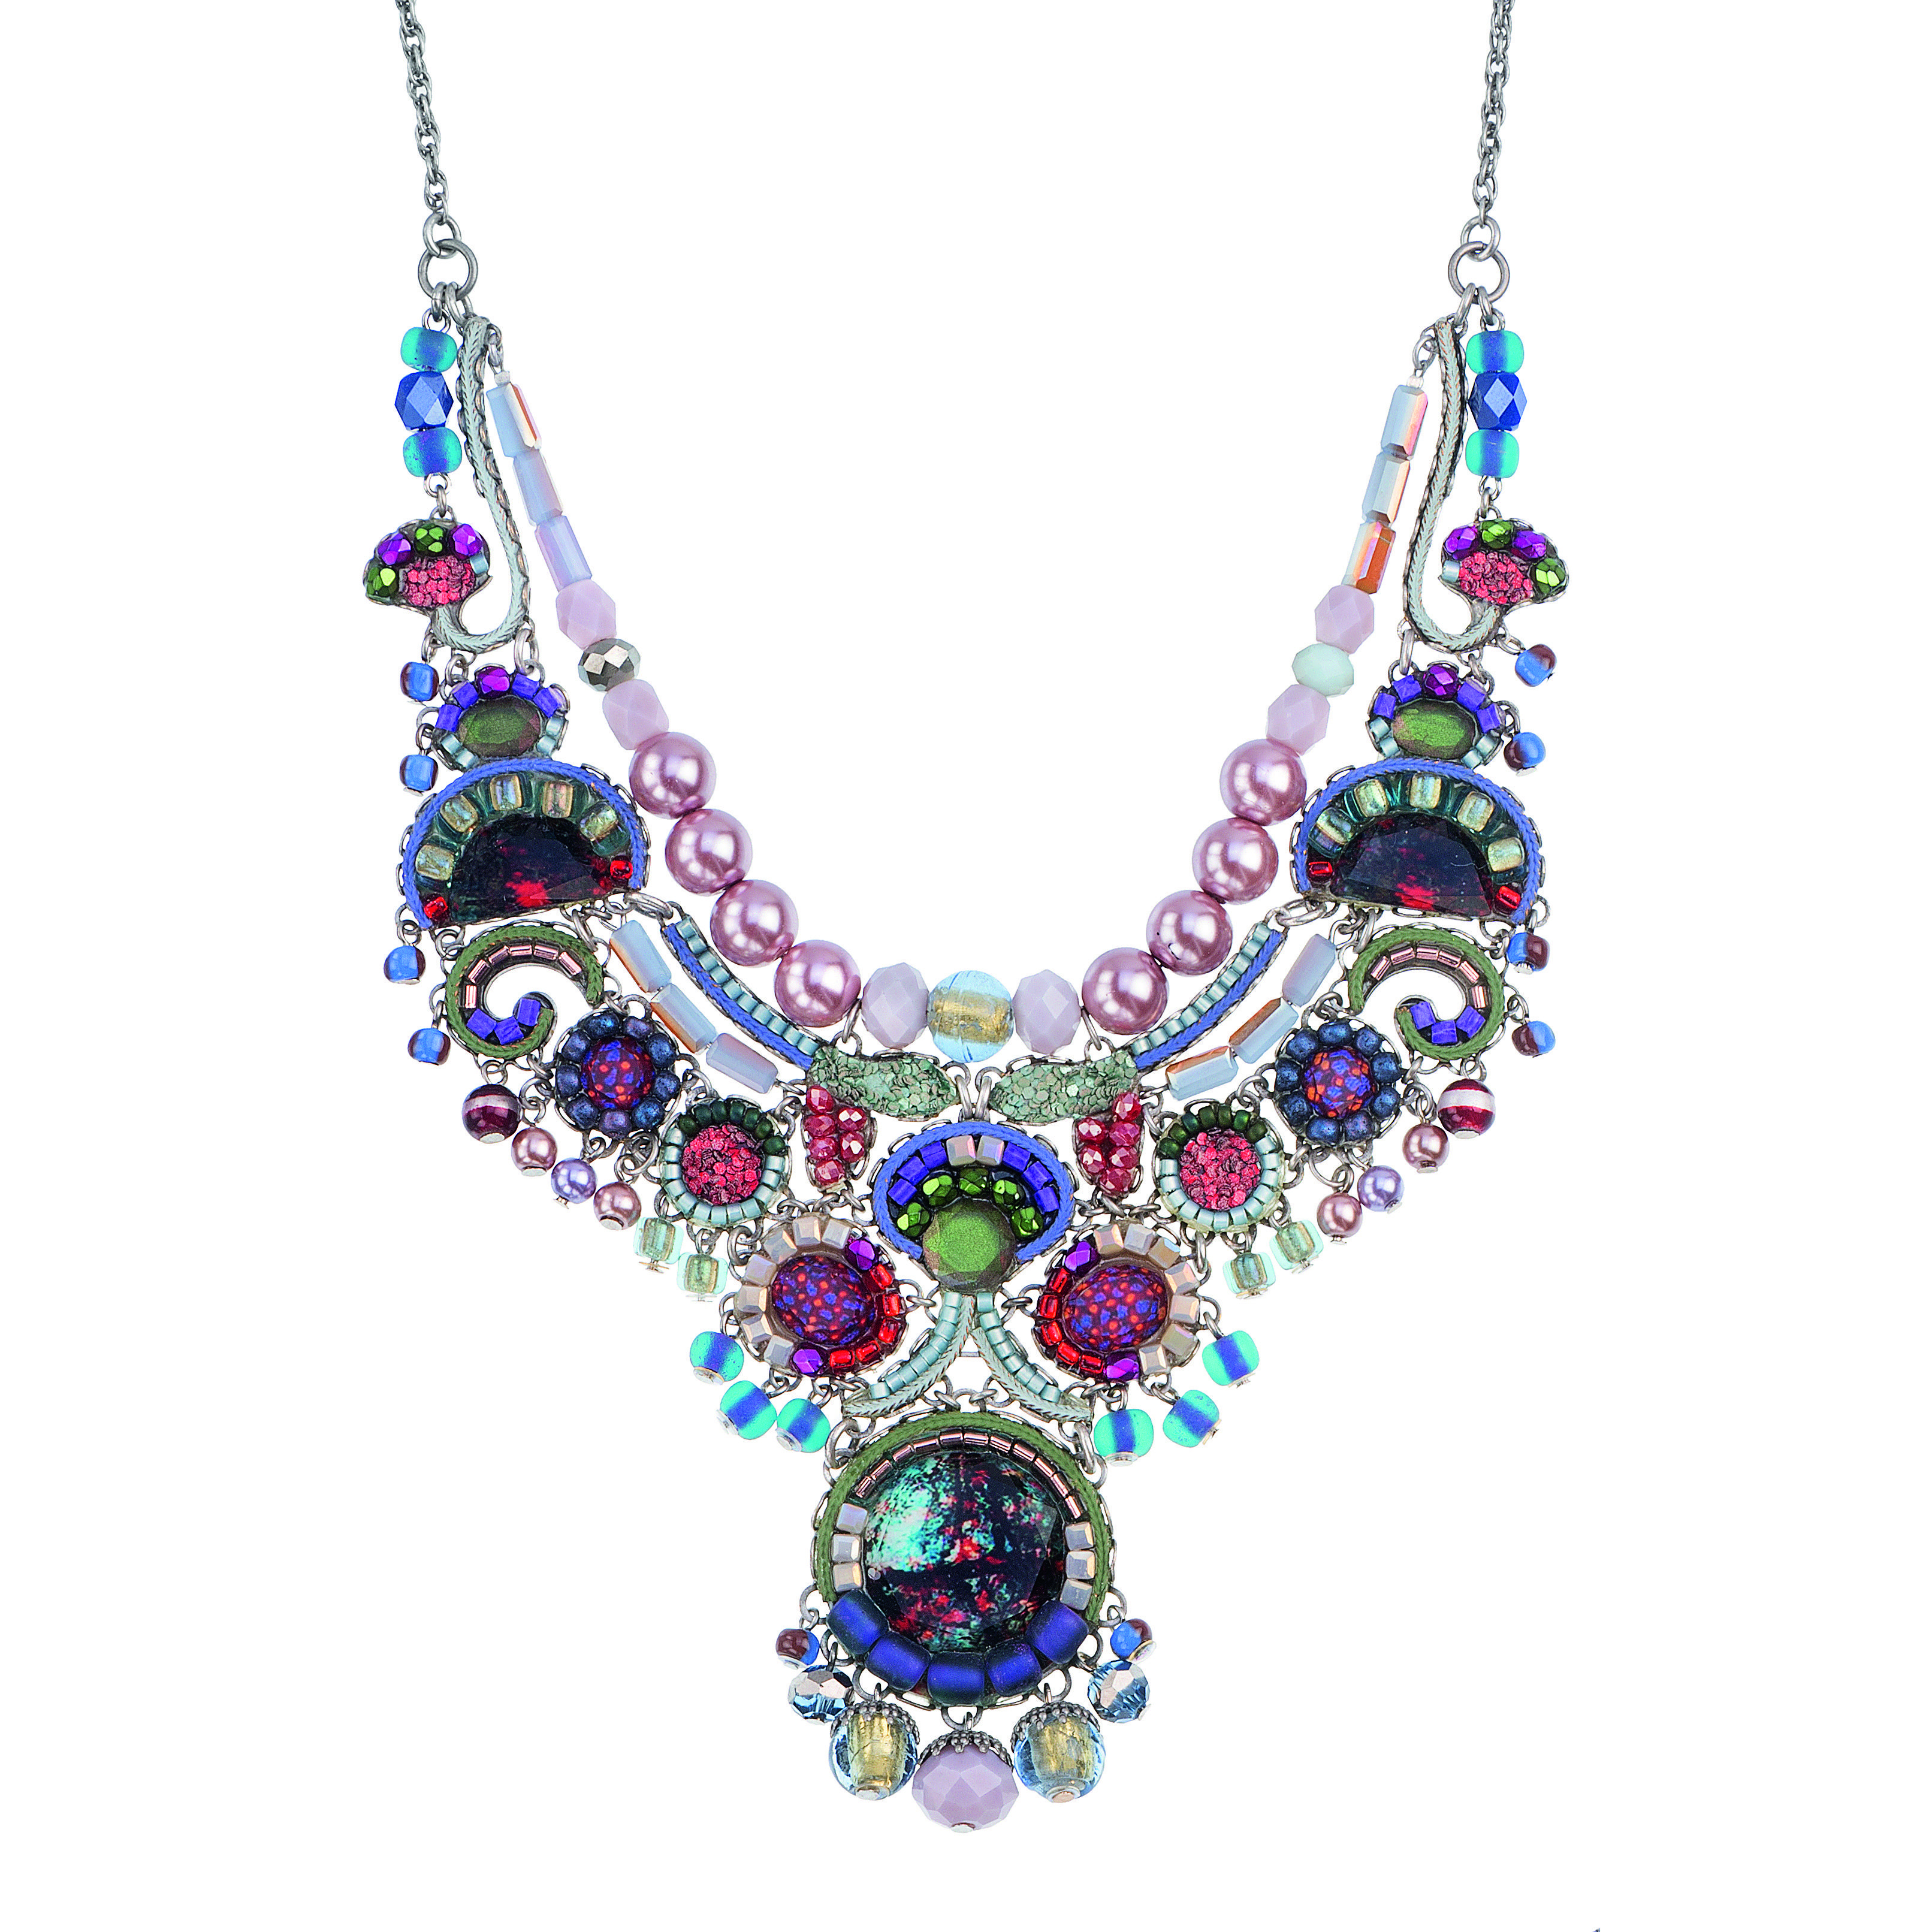 Aurora Necklace Ayala Bar Classic Collection Fall Winter 2016 17 Handmade Fashion Jewelry Fashion Accessories Jewelry Bar Necklace